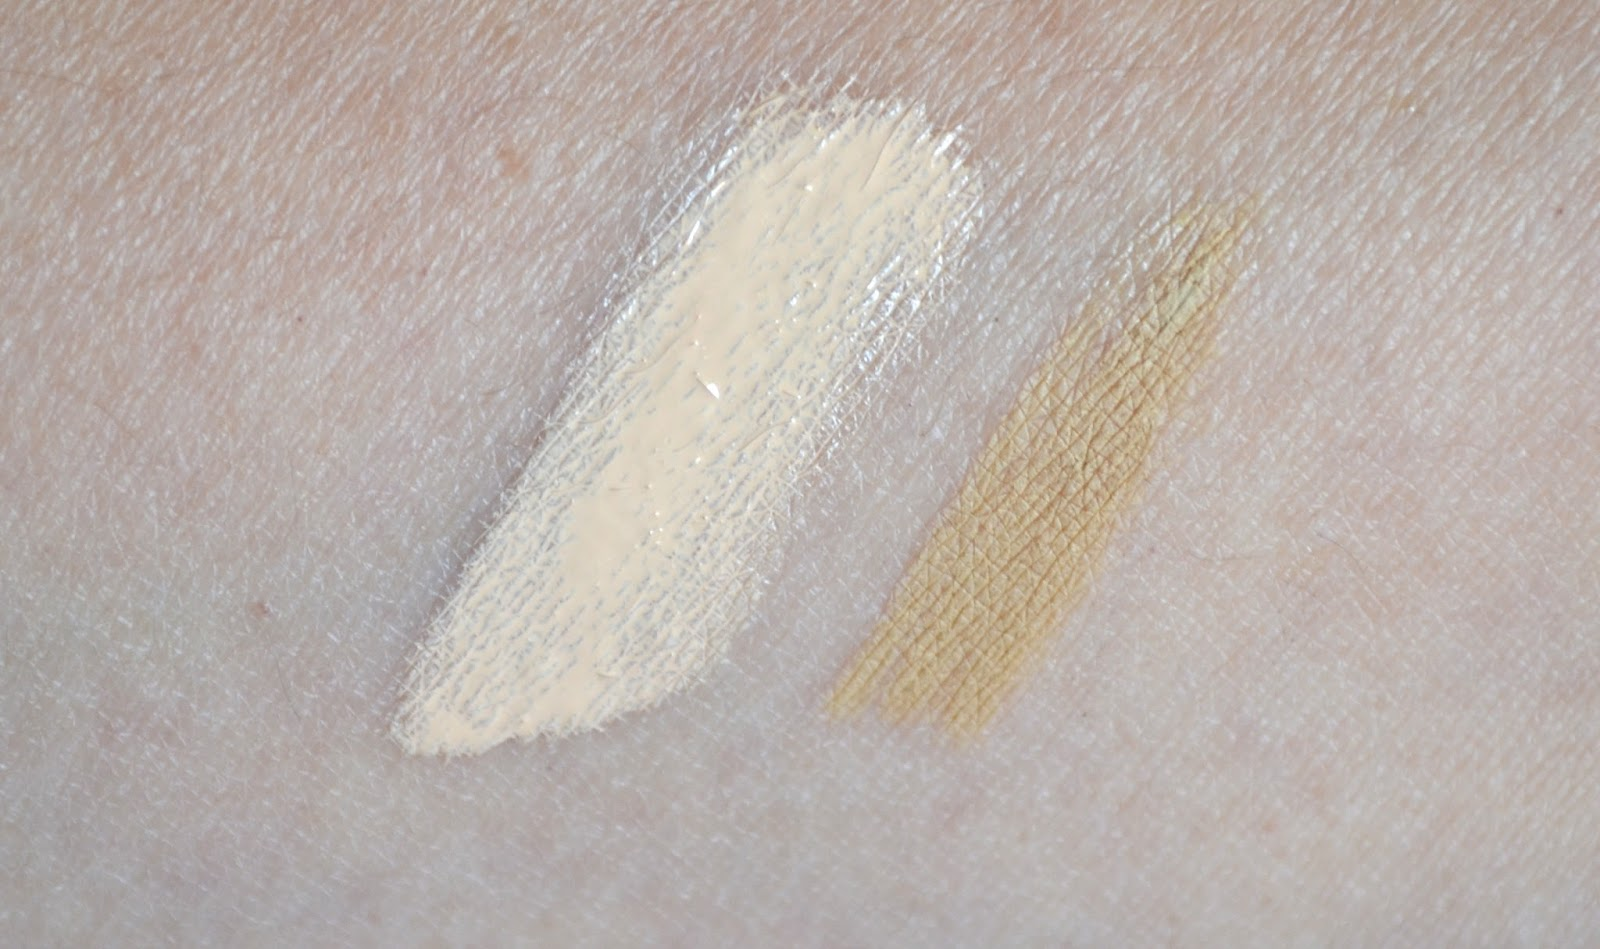 Hard Candy Glamoflauge Heavy Duty Concealer - Review | Aquaheart